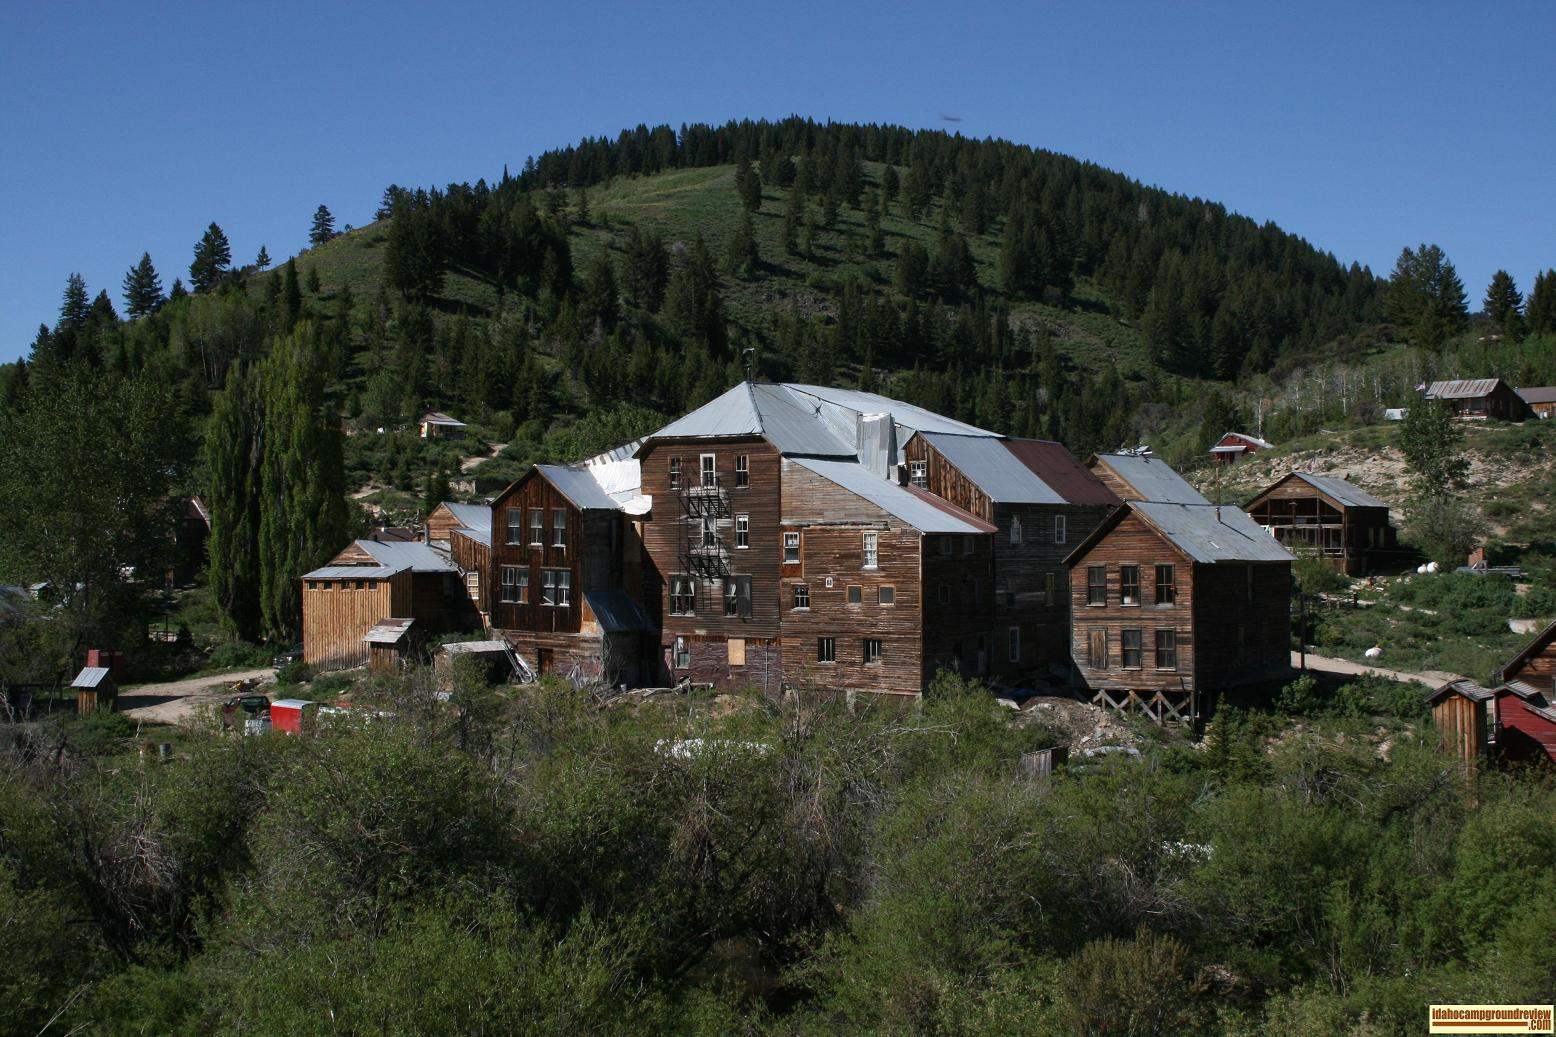 The hotel at Silver City, Idaho from the back side